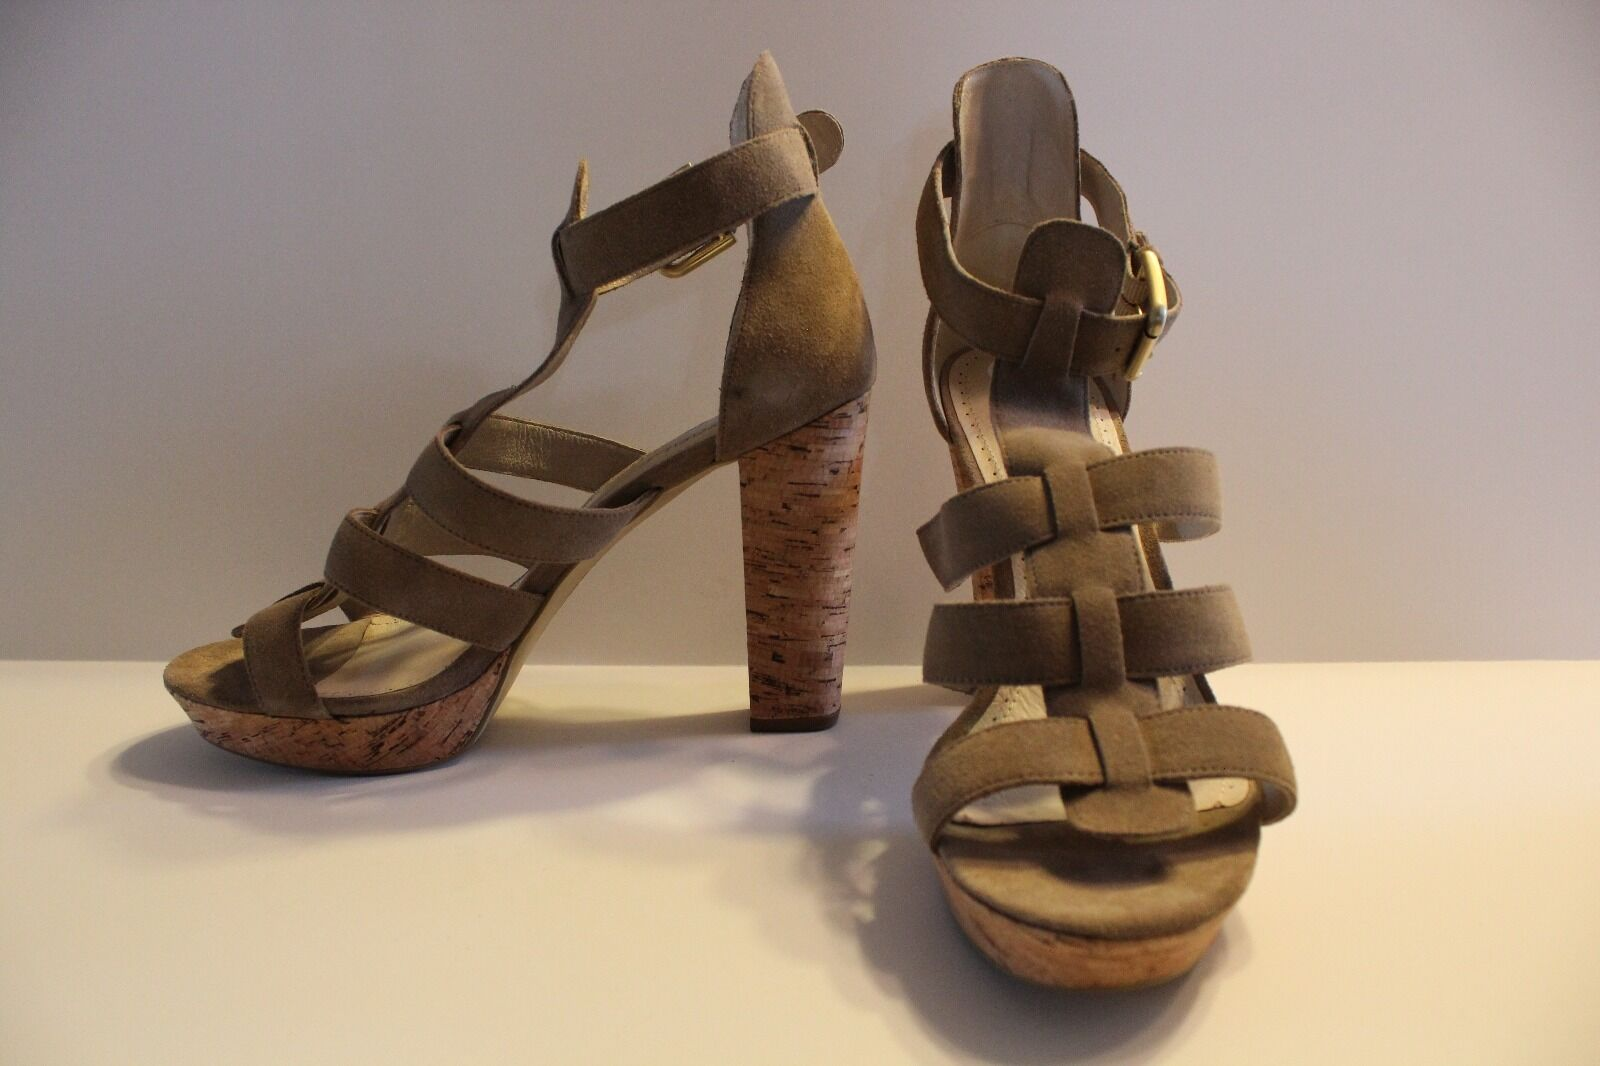 NWT pinkgold PANA Women's Taupe Open Toed High Heeled shoes Sandals size 9